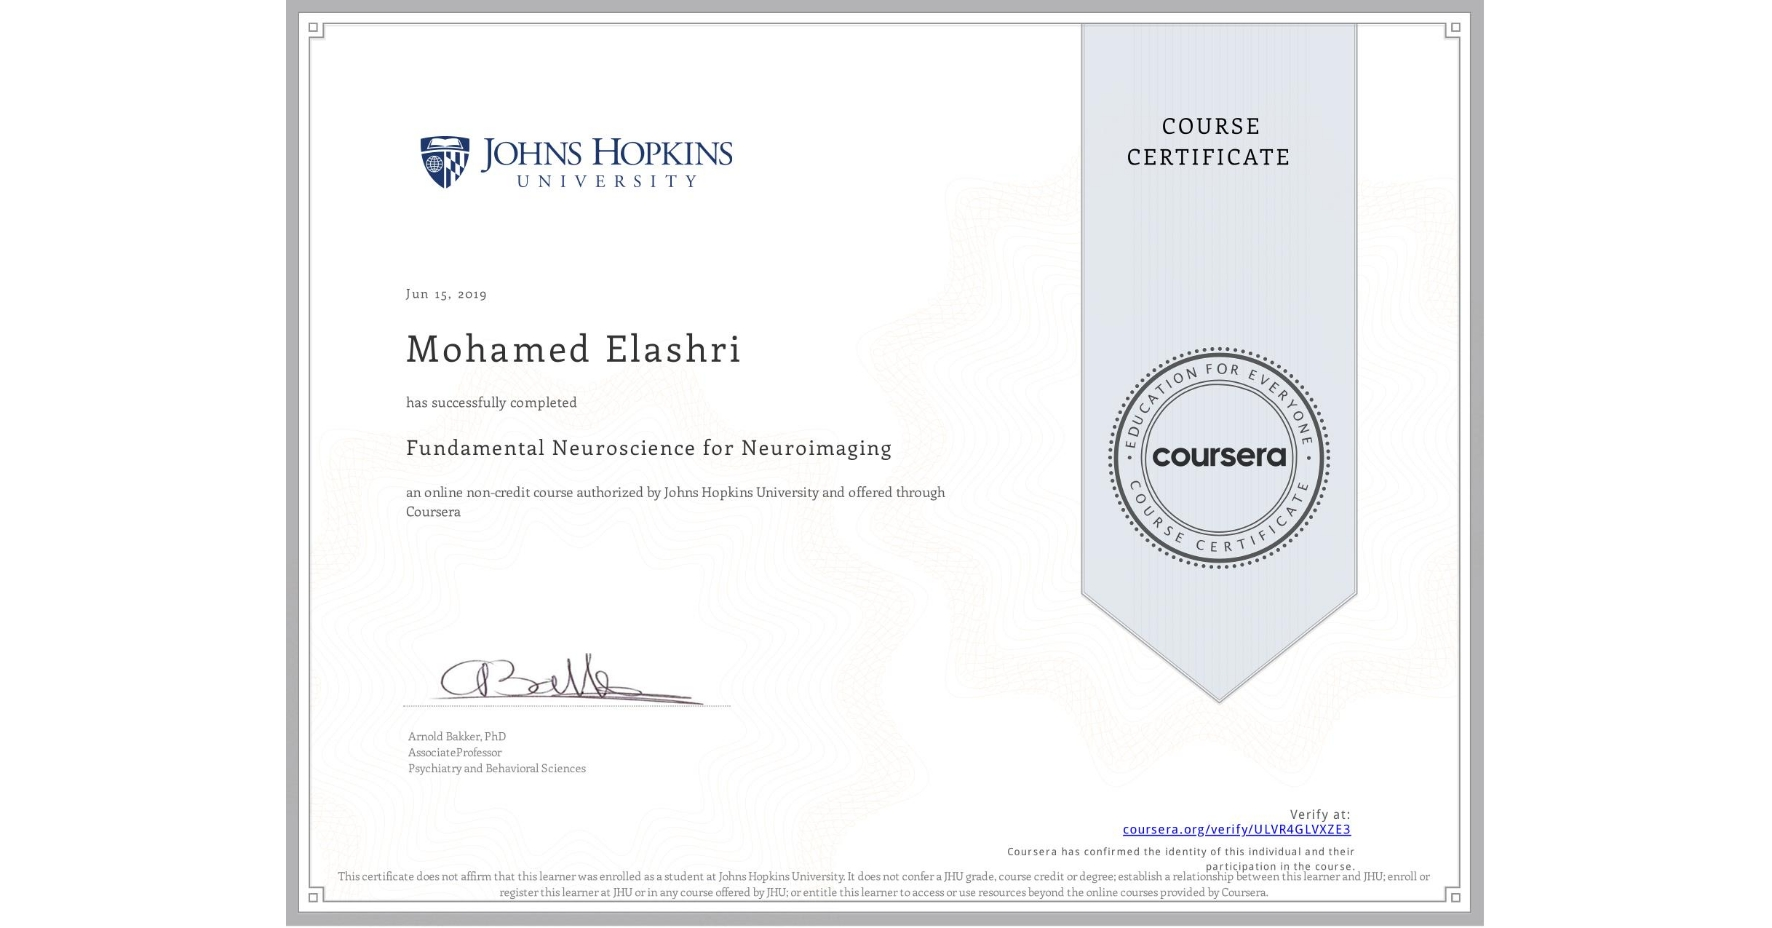 View certificate for Mohamed Elashri, Fundamental Neuroscience for Neuroimaging, an online non-credit course authorized by Johns Hopkins University and offered through Coursera